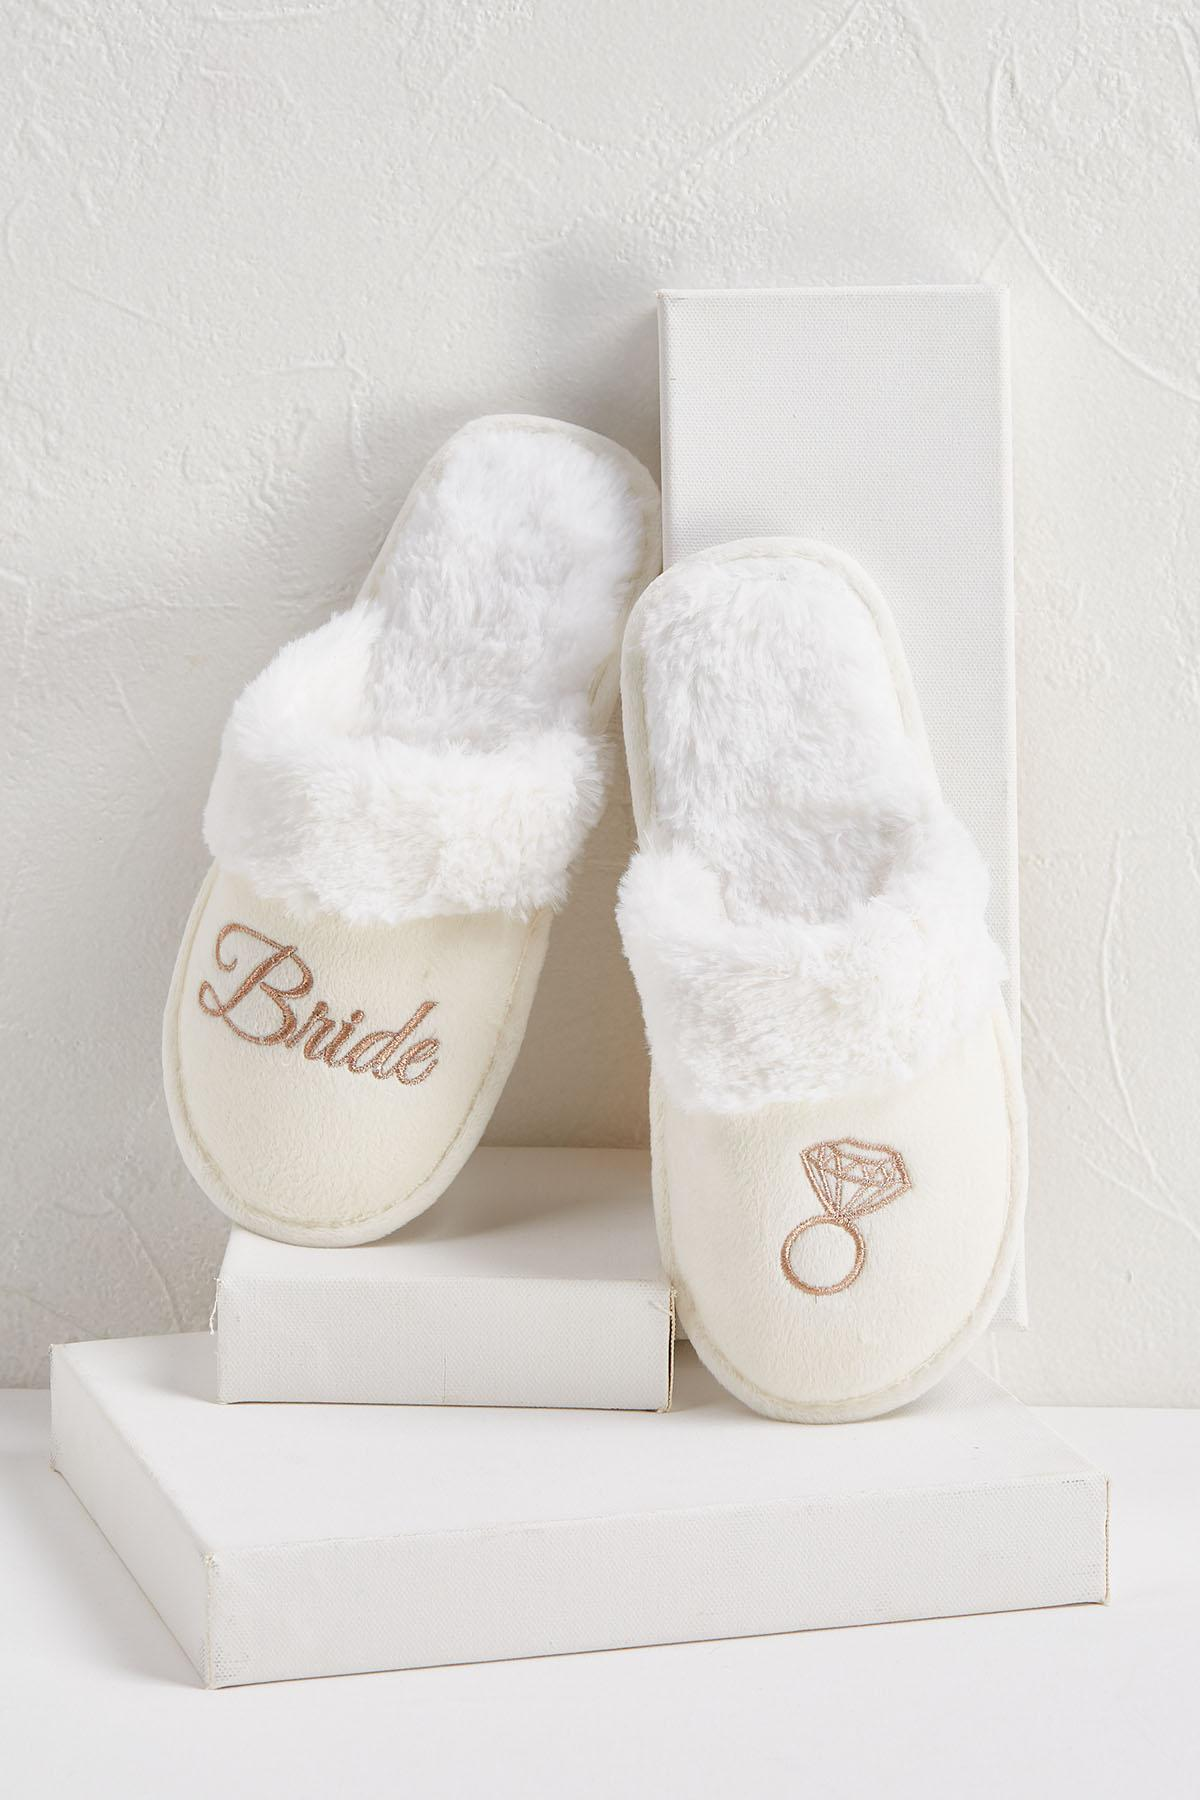 Cozy Bride Slippers